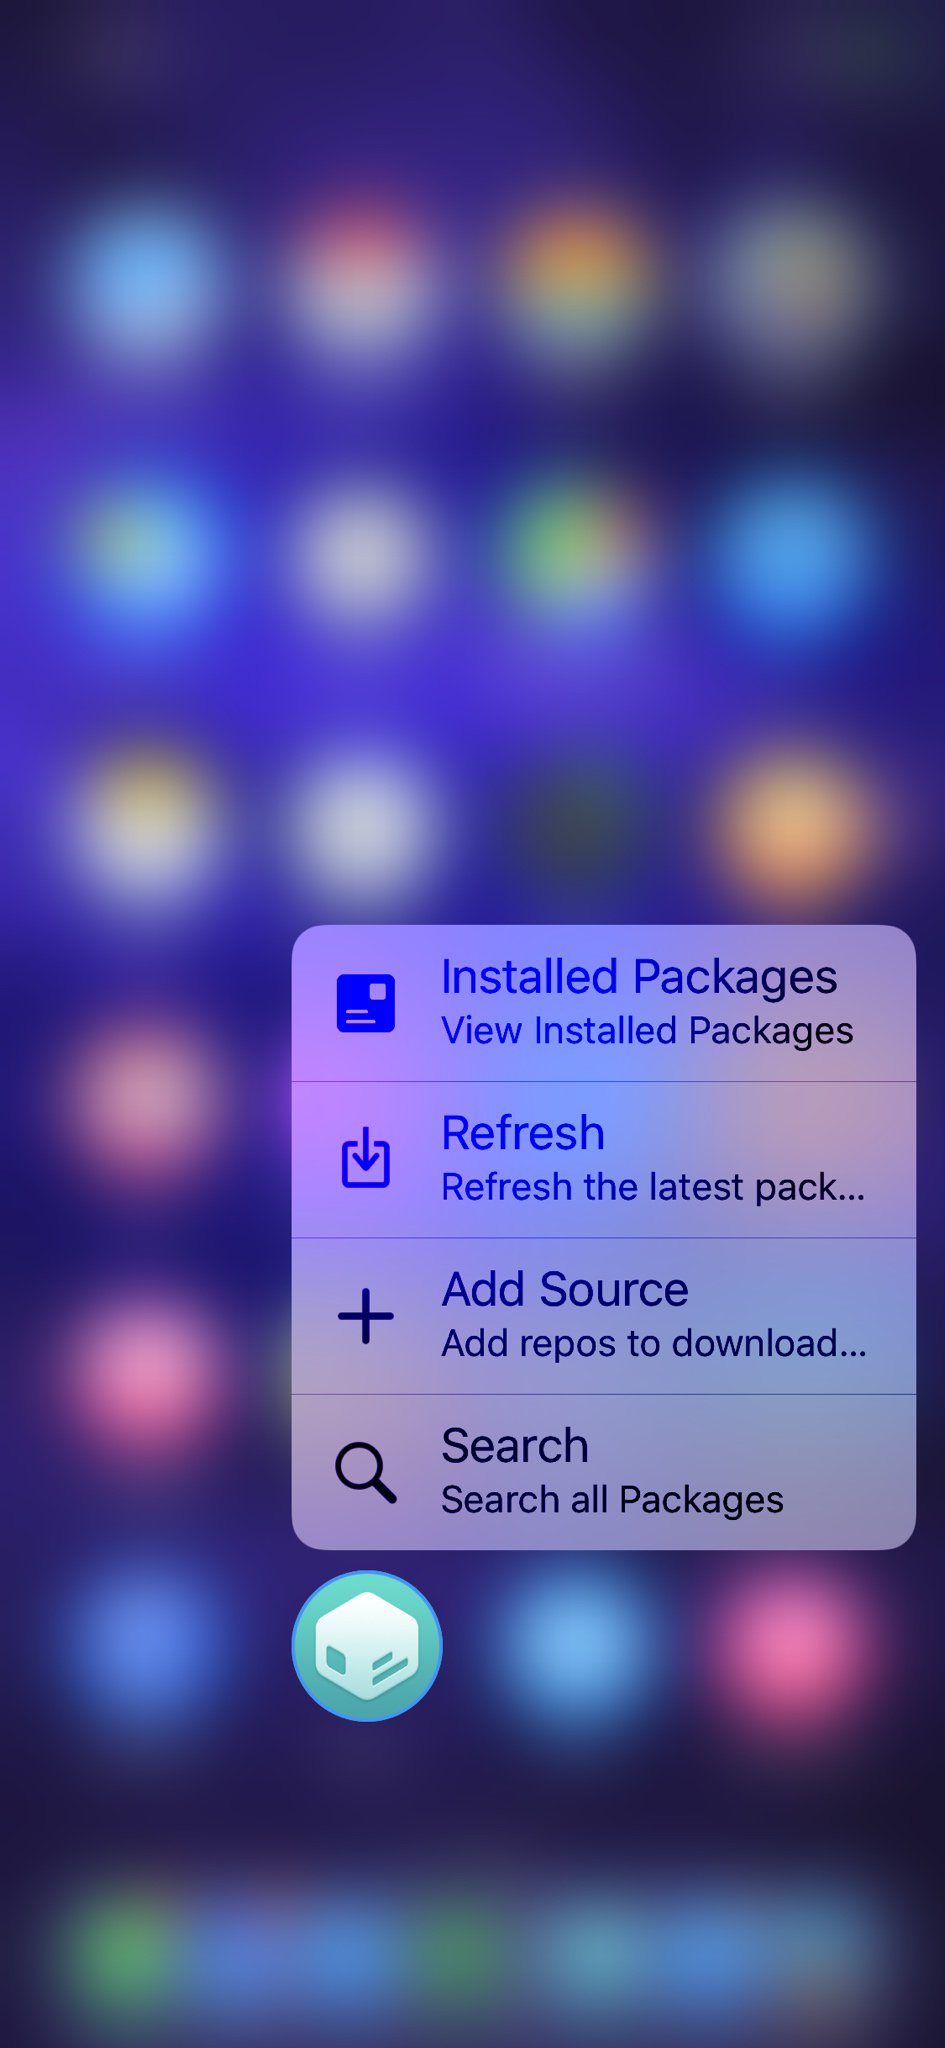 New Sileo Beta Adds 3D Touch Support, Fixes App Crashing Issue - 3uTools